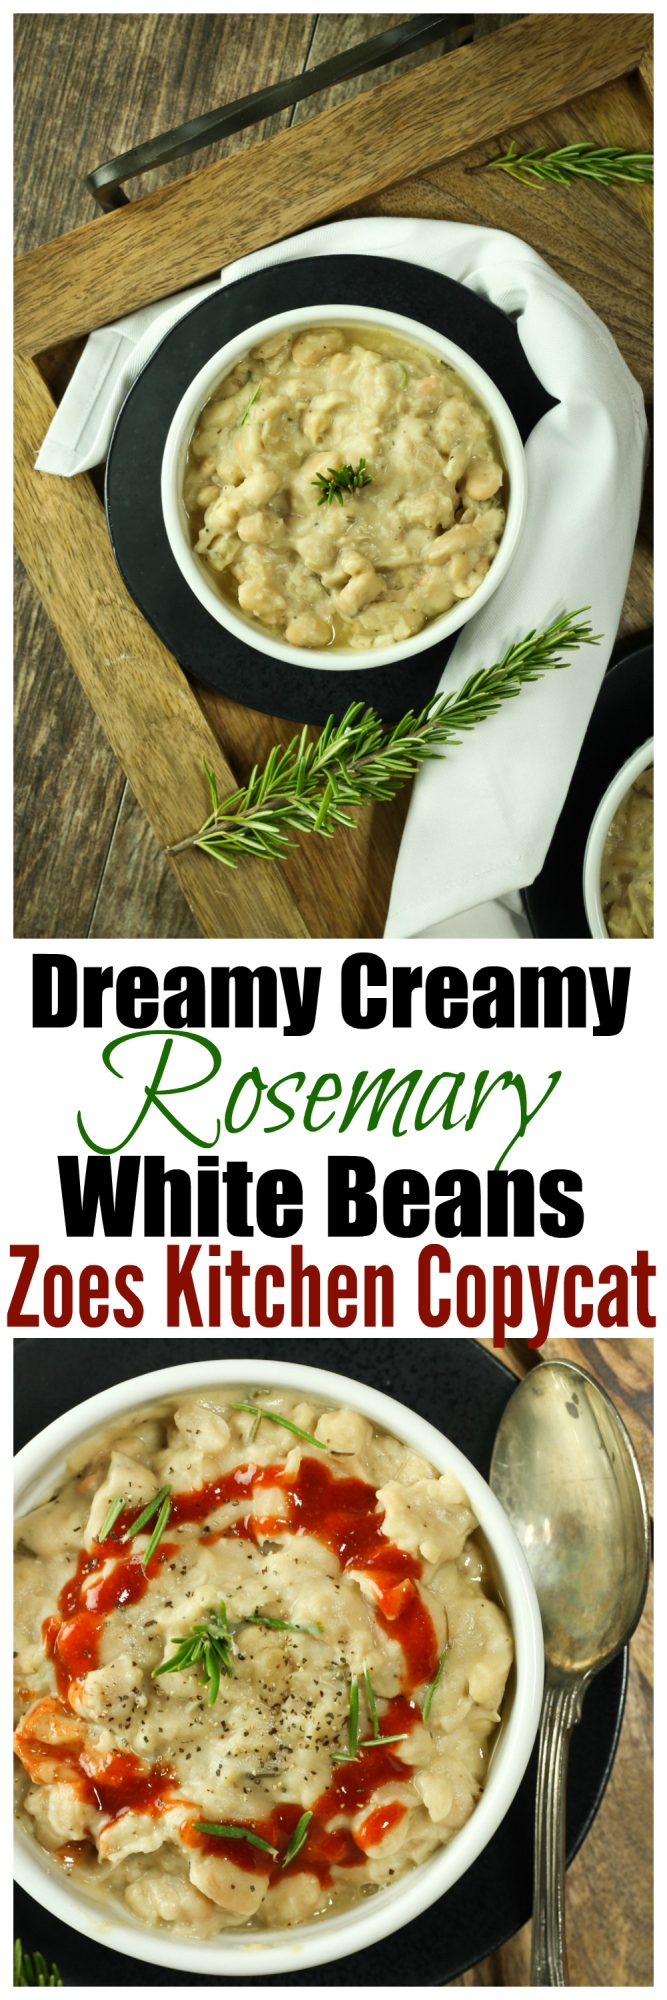 Rosemary White Beans (Zoes Kitchen copycat) | The Vegan 8